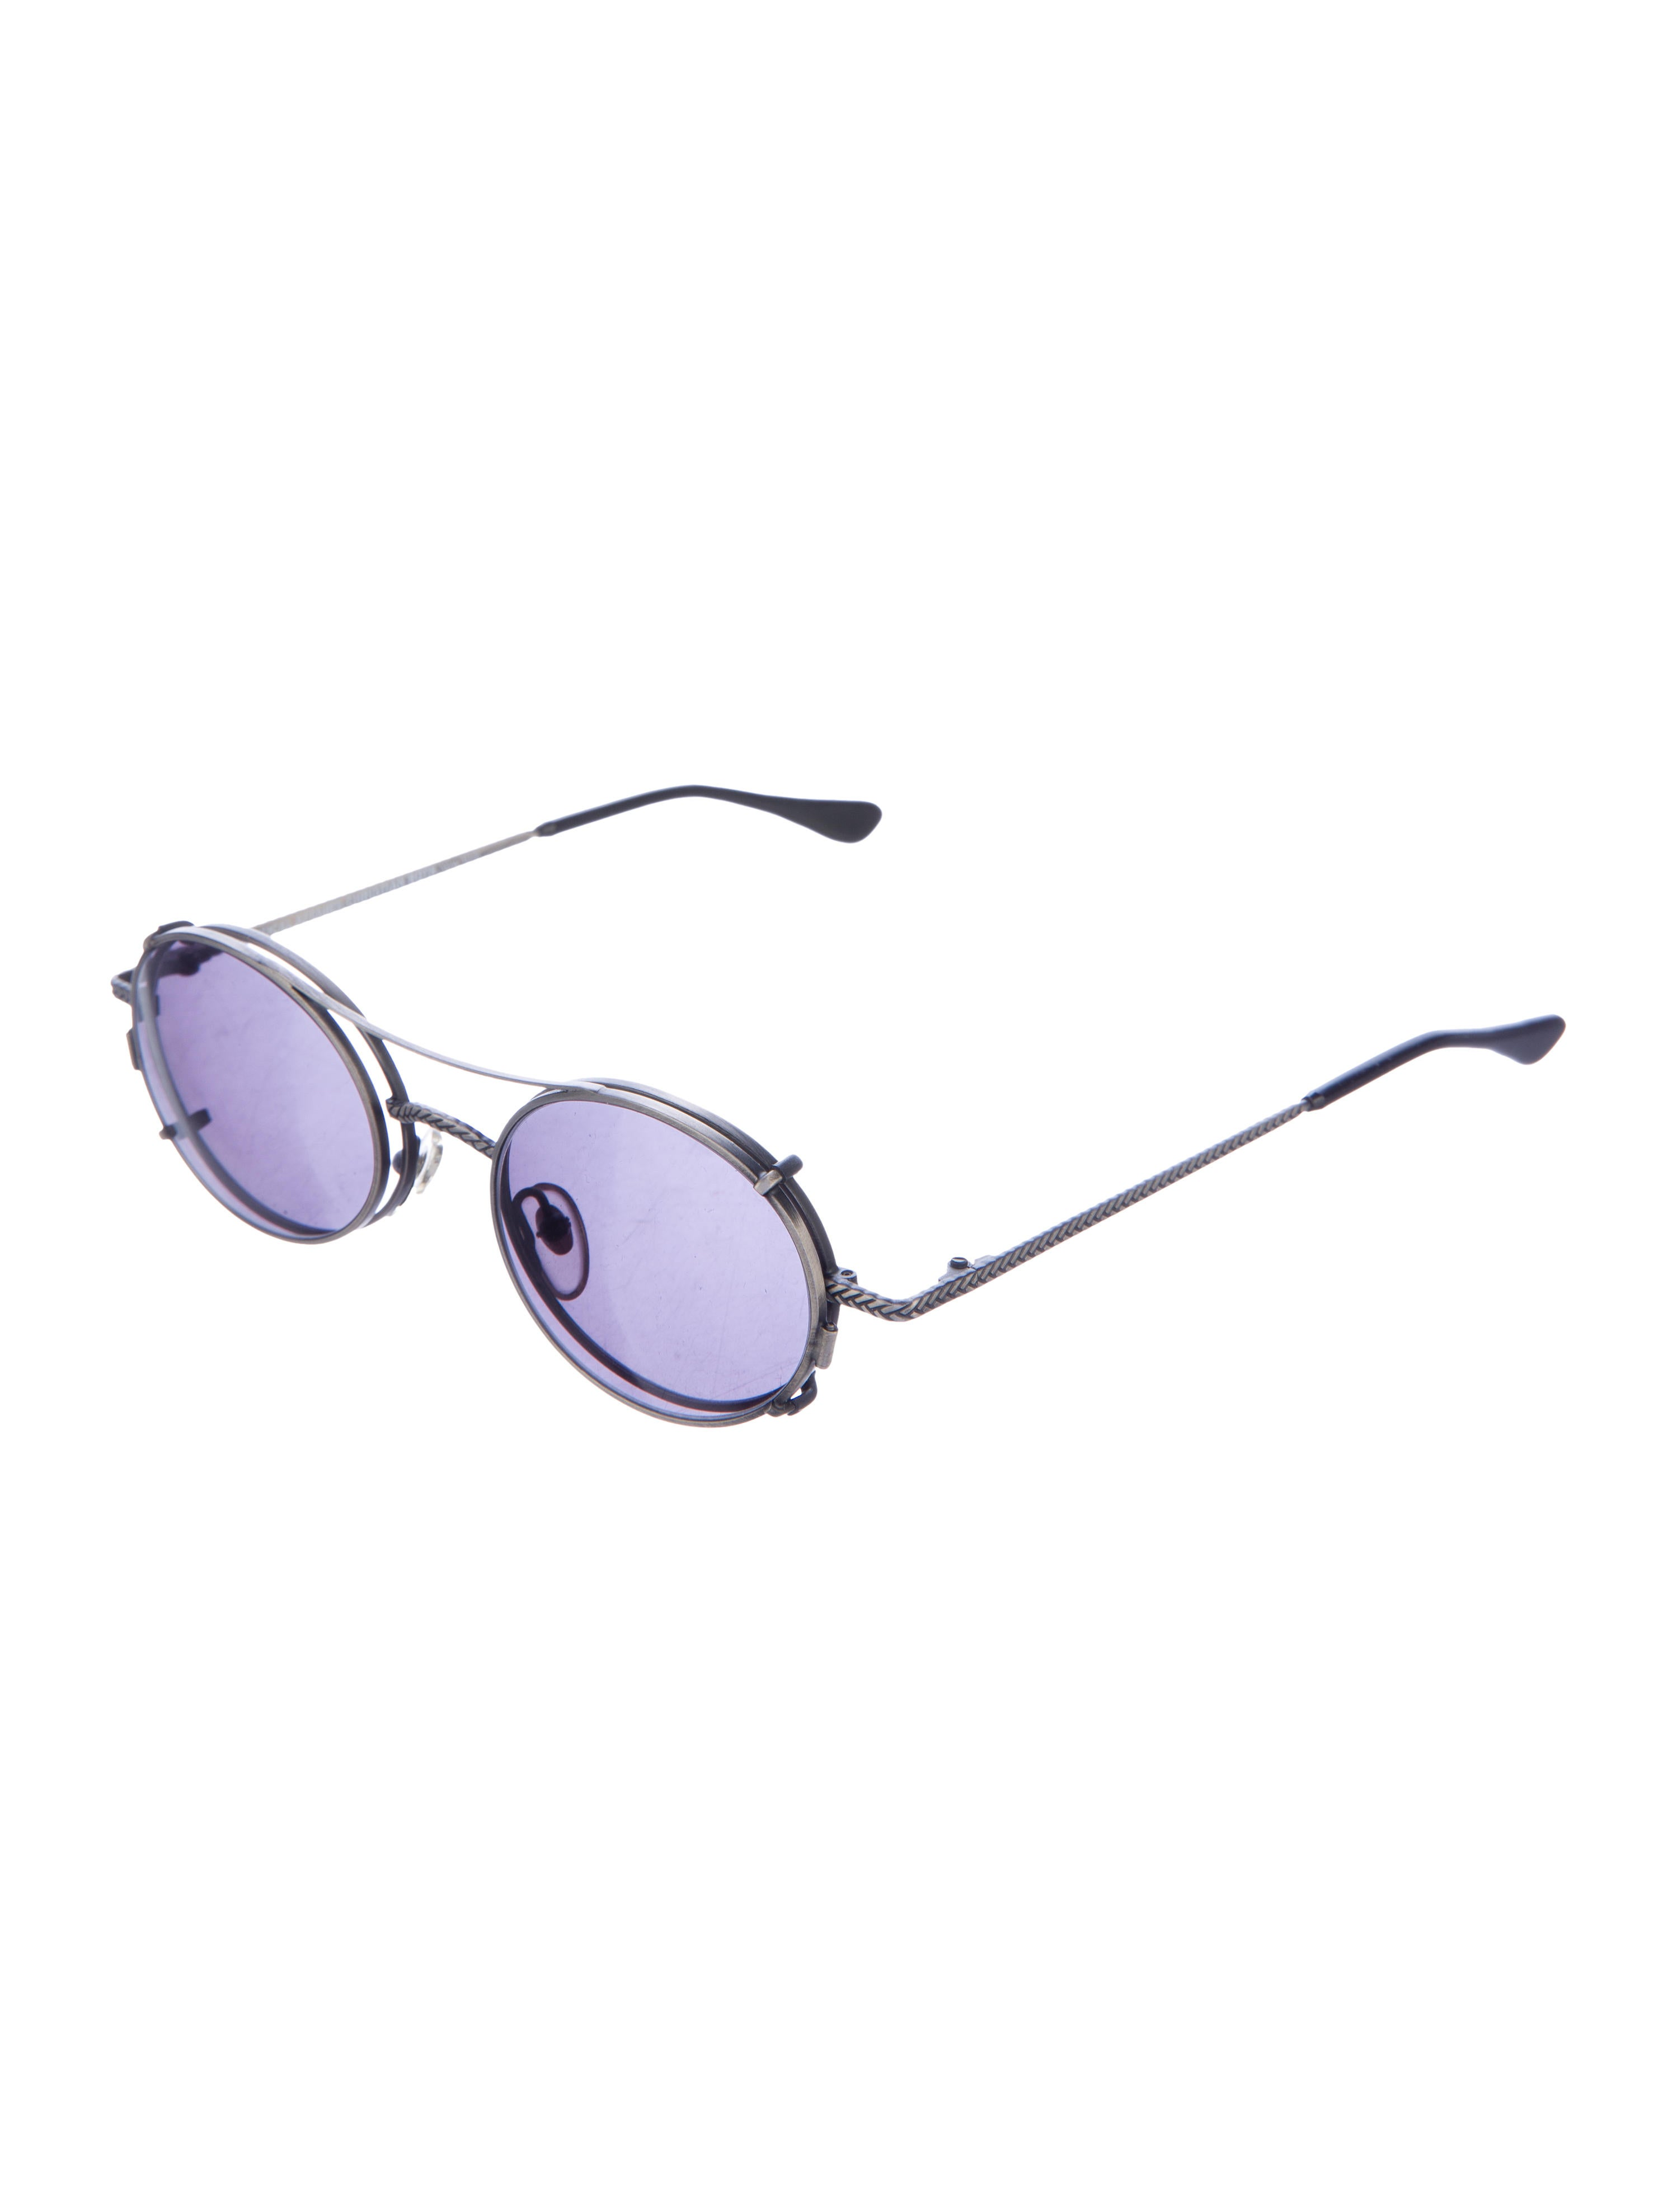 christian roth eyeglasses with 4 prong clip